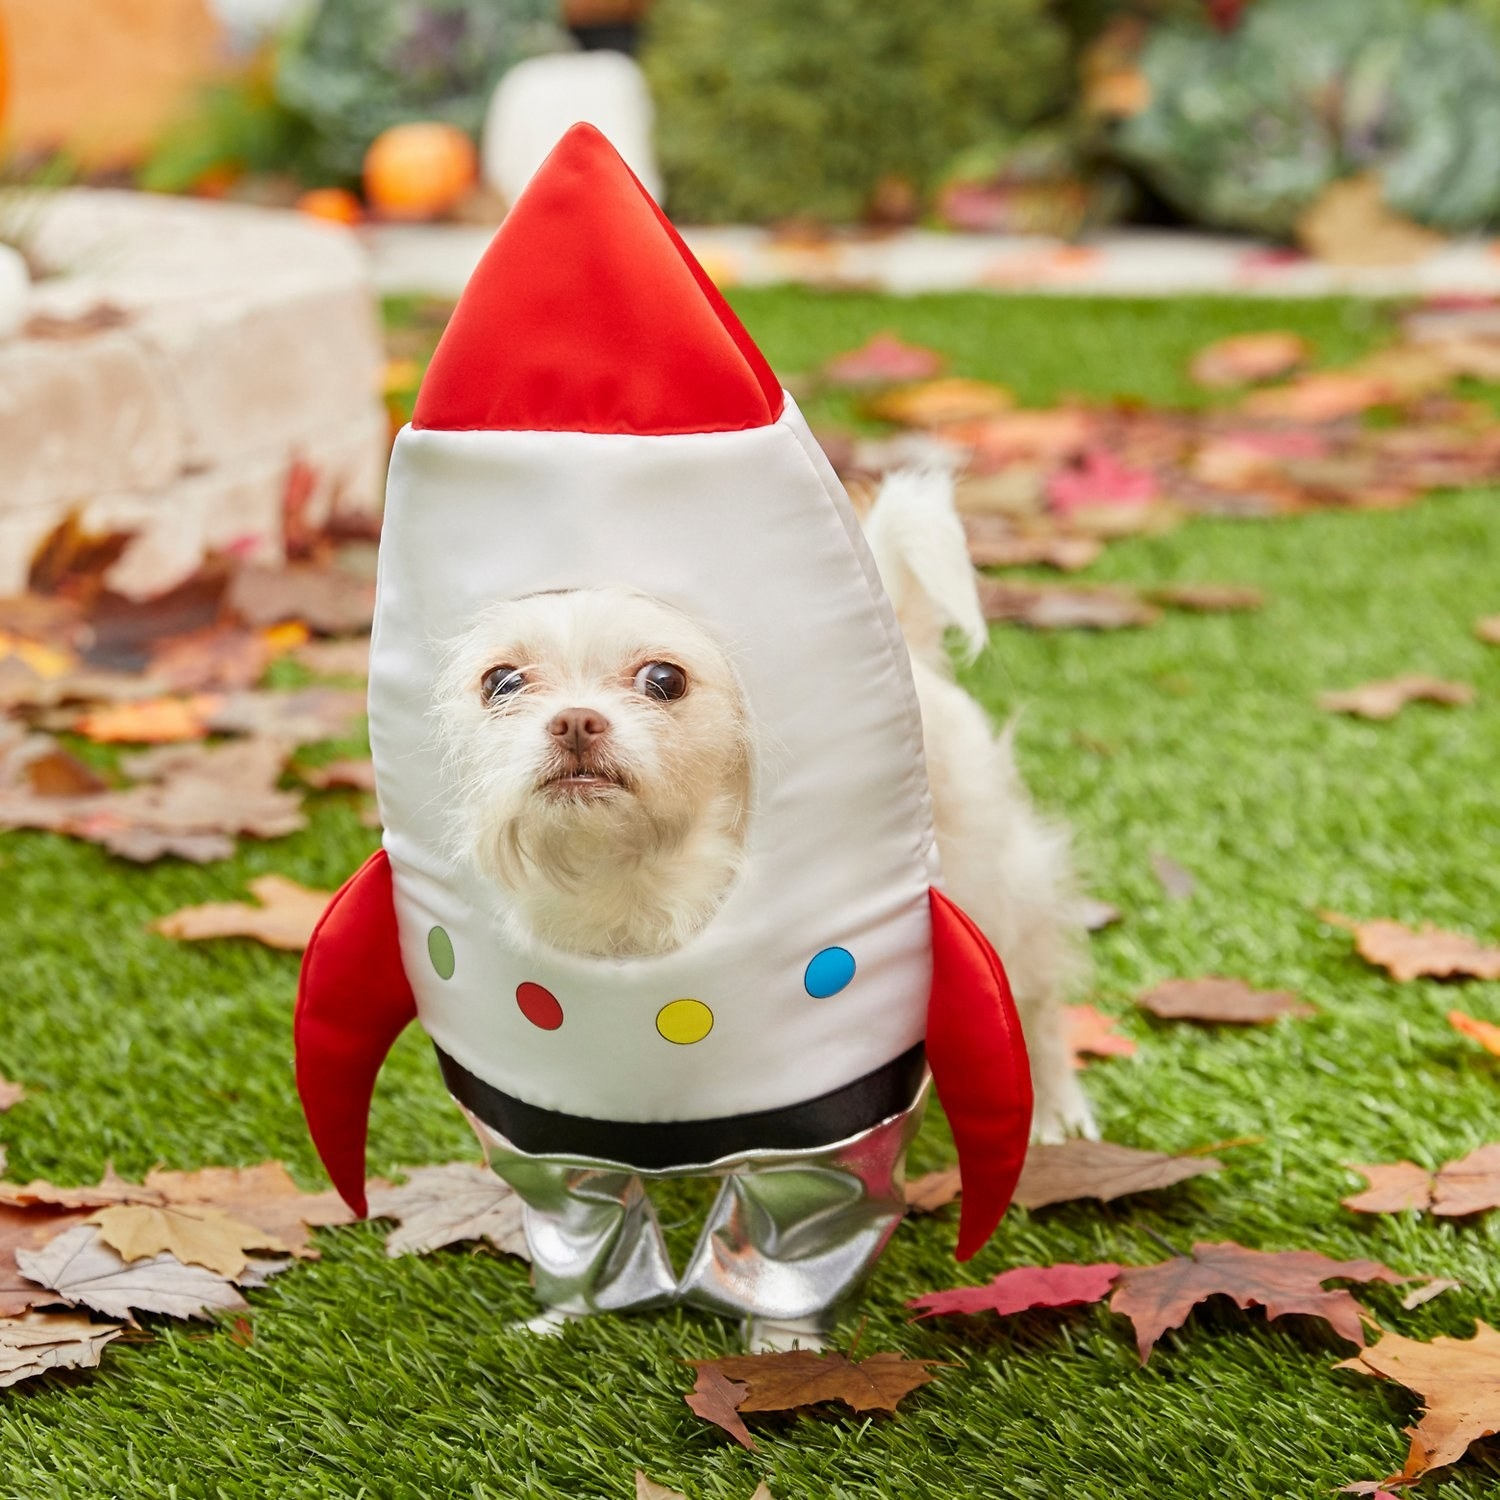 a dog wearing a costume that looks like a rocket ship